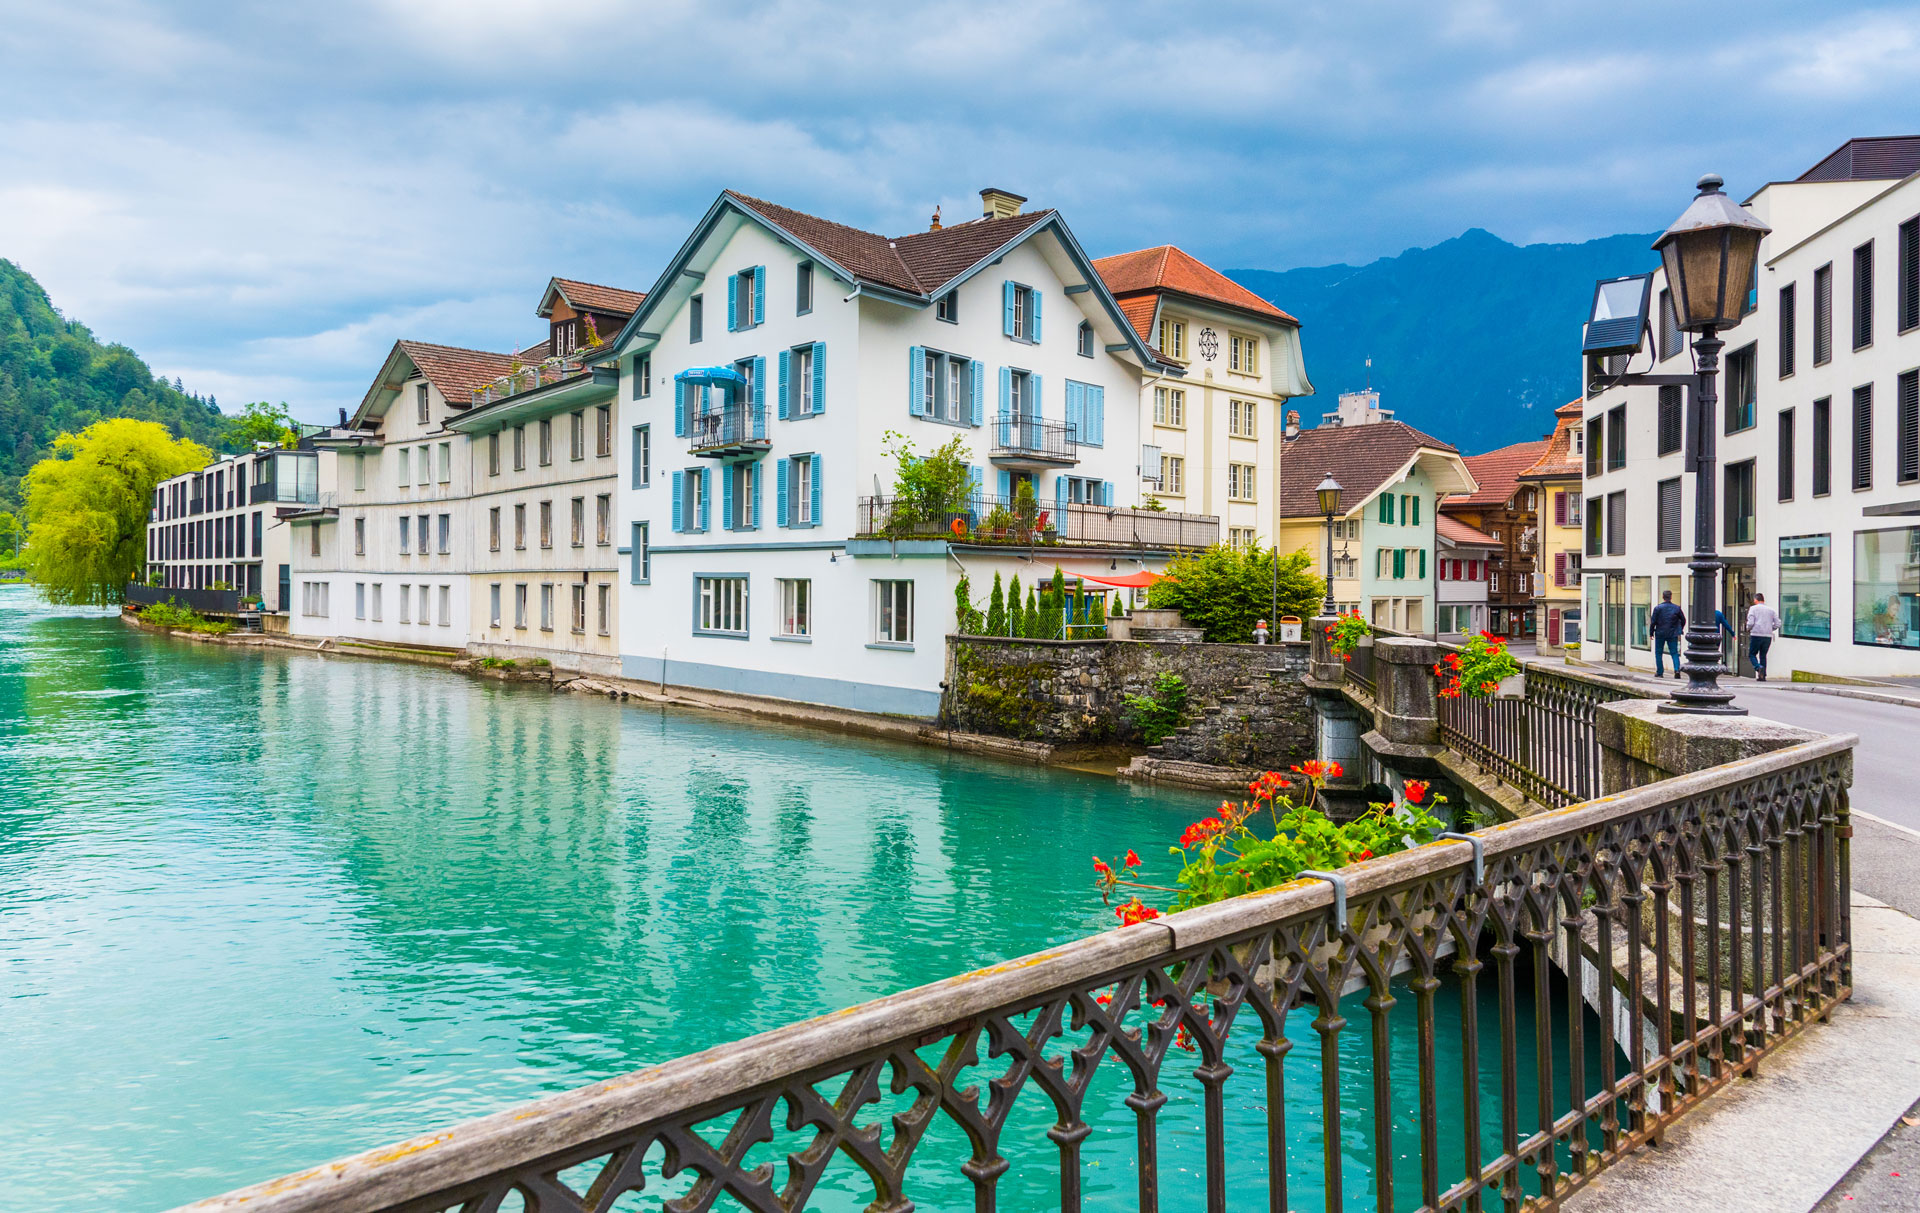 Lake-Thun-in-Interlaken-Switzerland.jpg